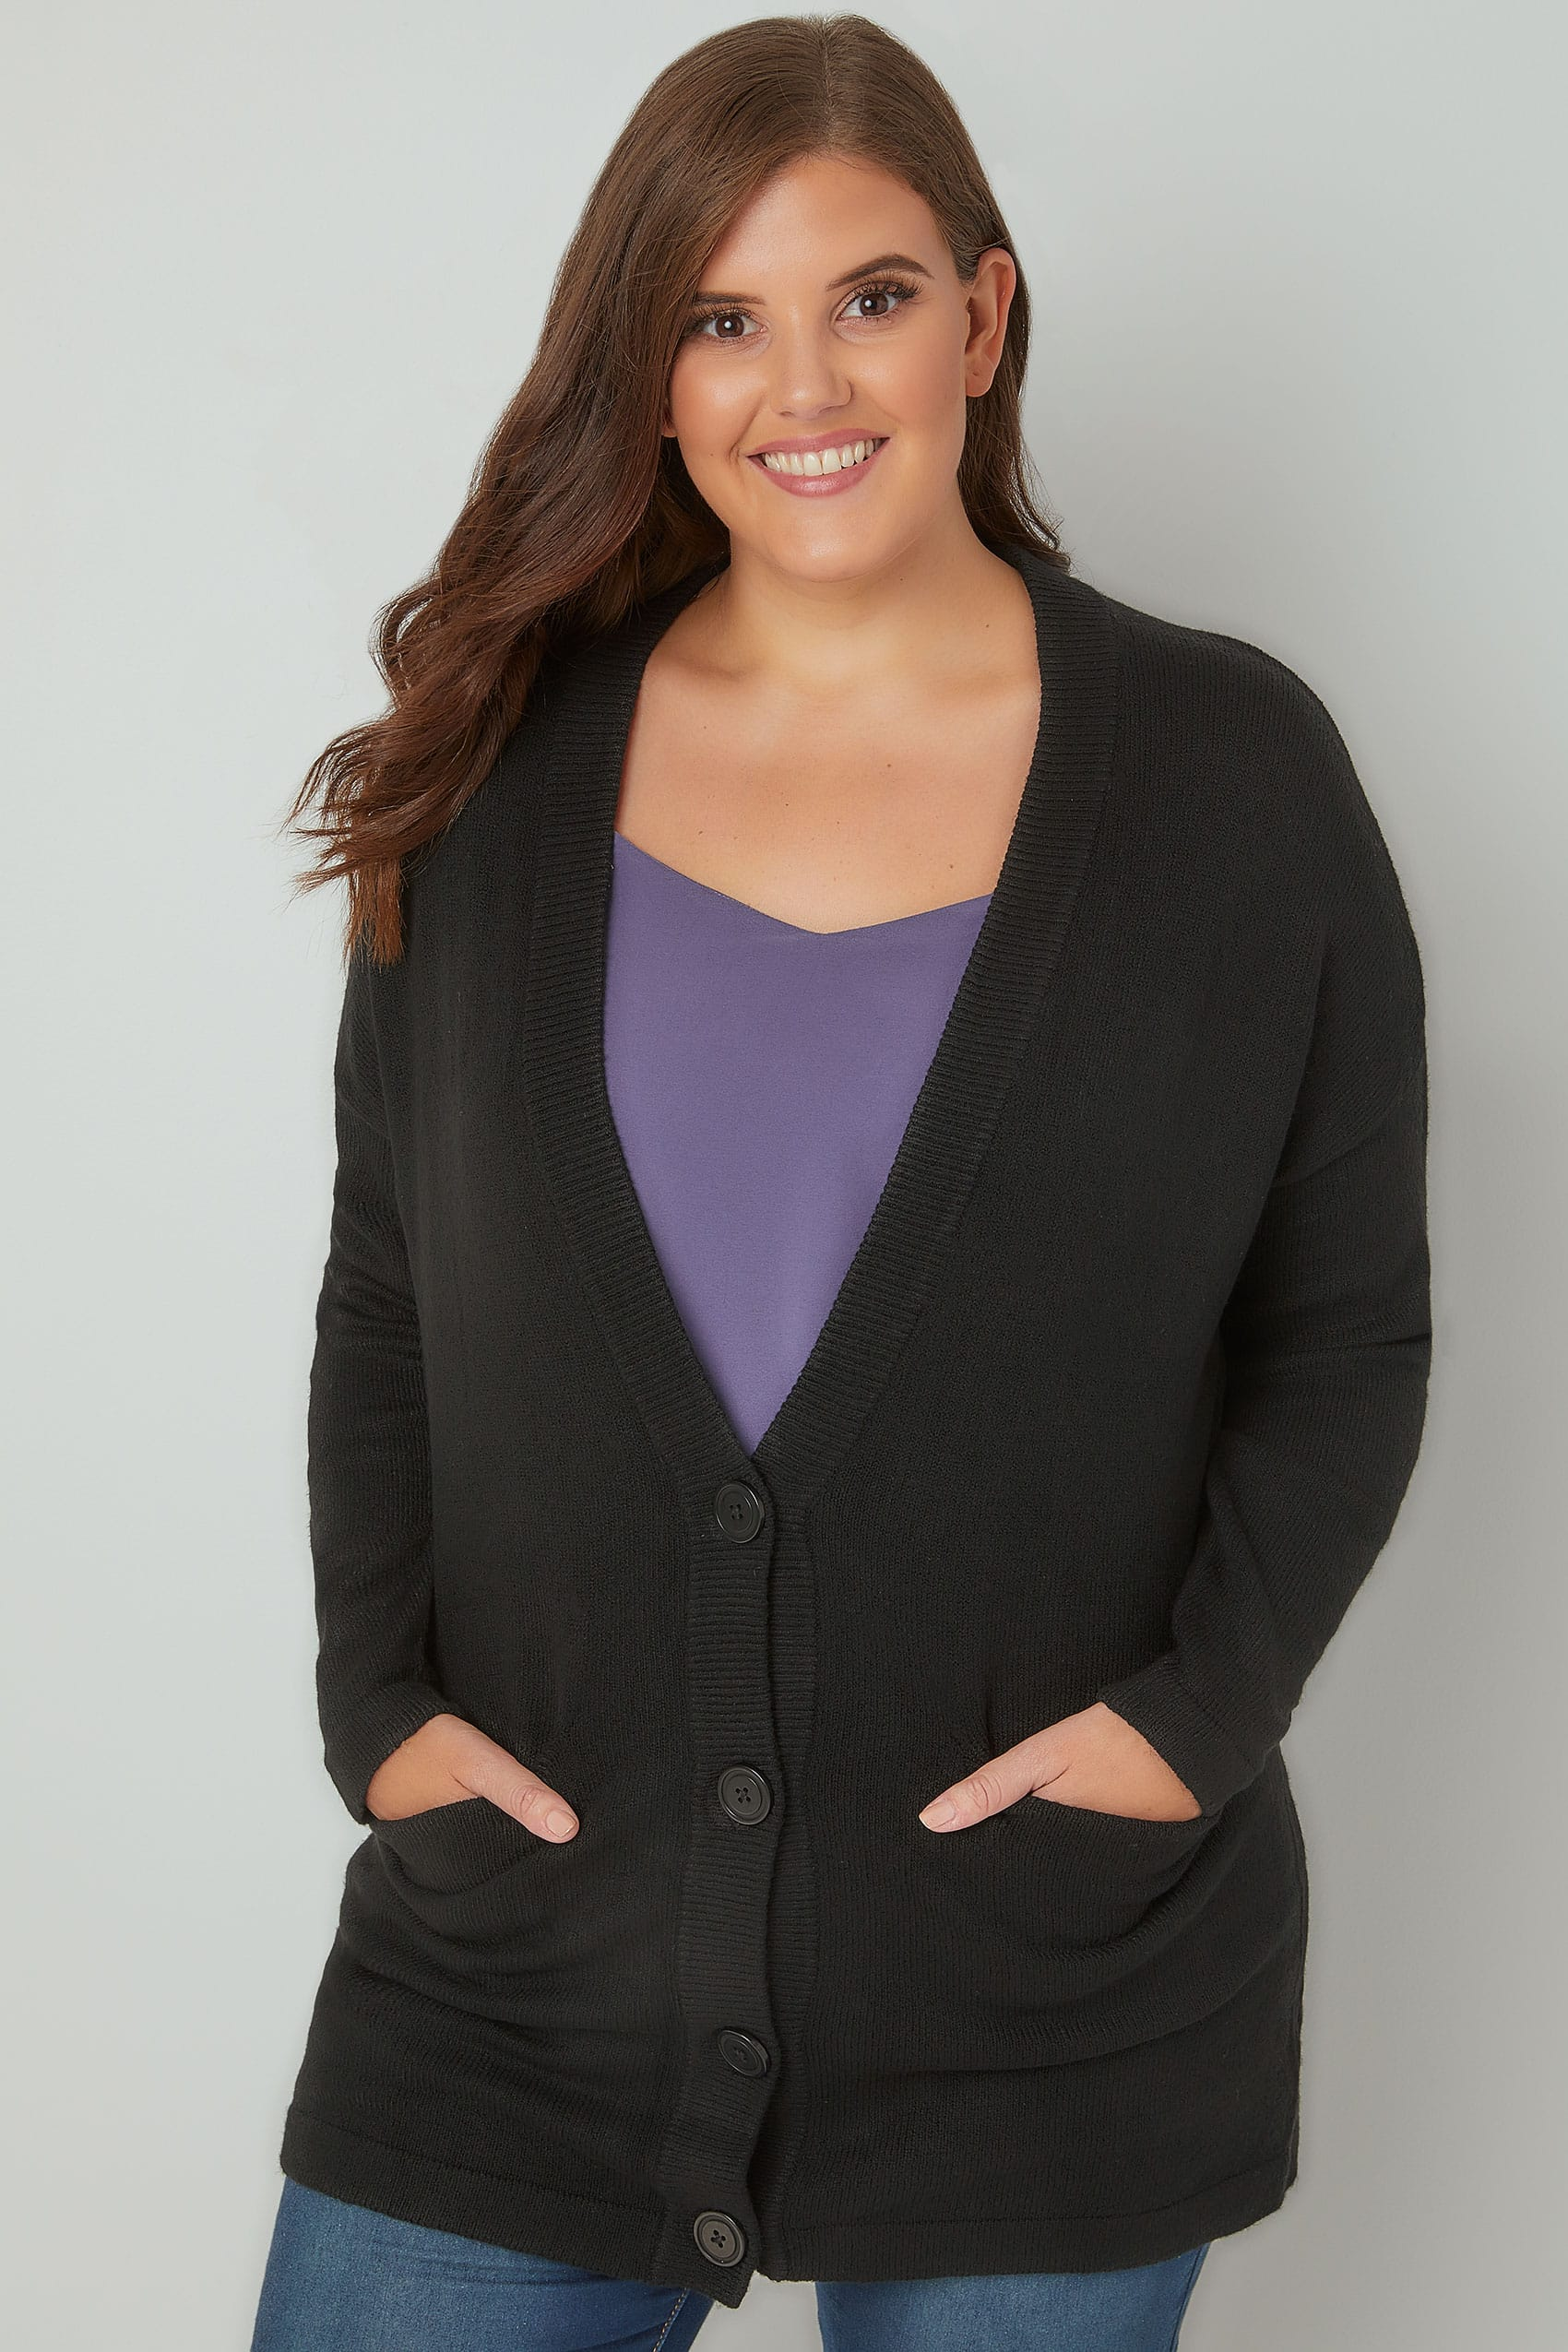 Black Button Up Cardigan With Two Pockets, Plus size 16 to 36